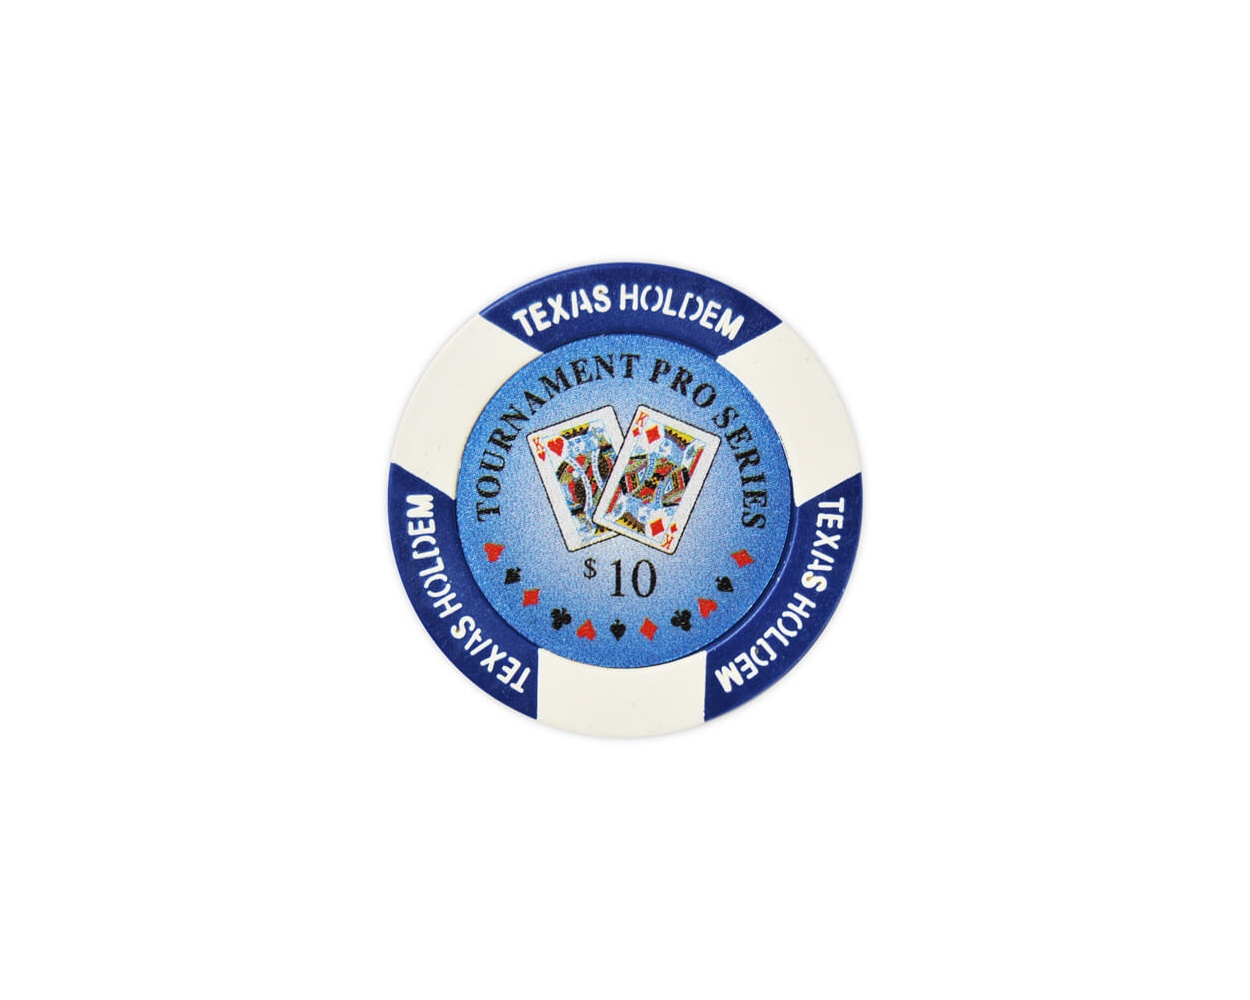 Tournament Pro - $10 Blue Clay Poker Chips